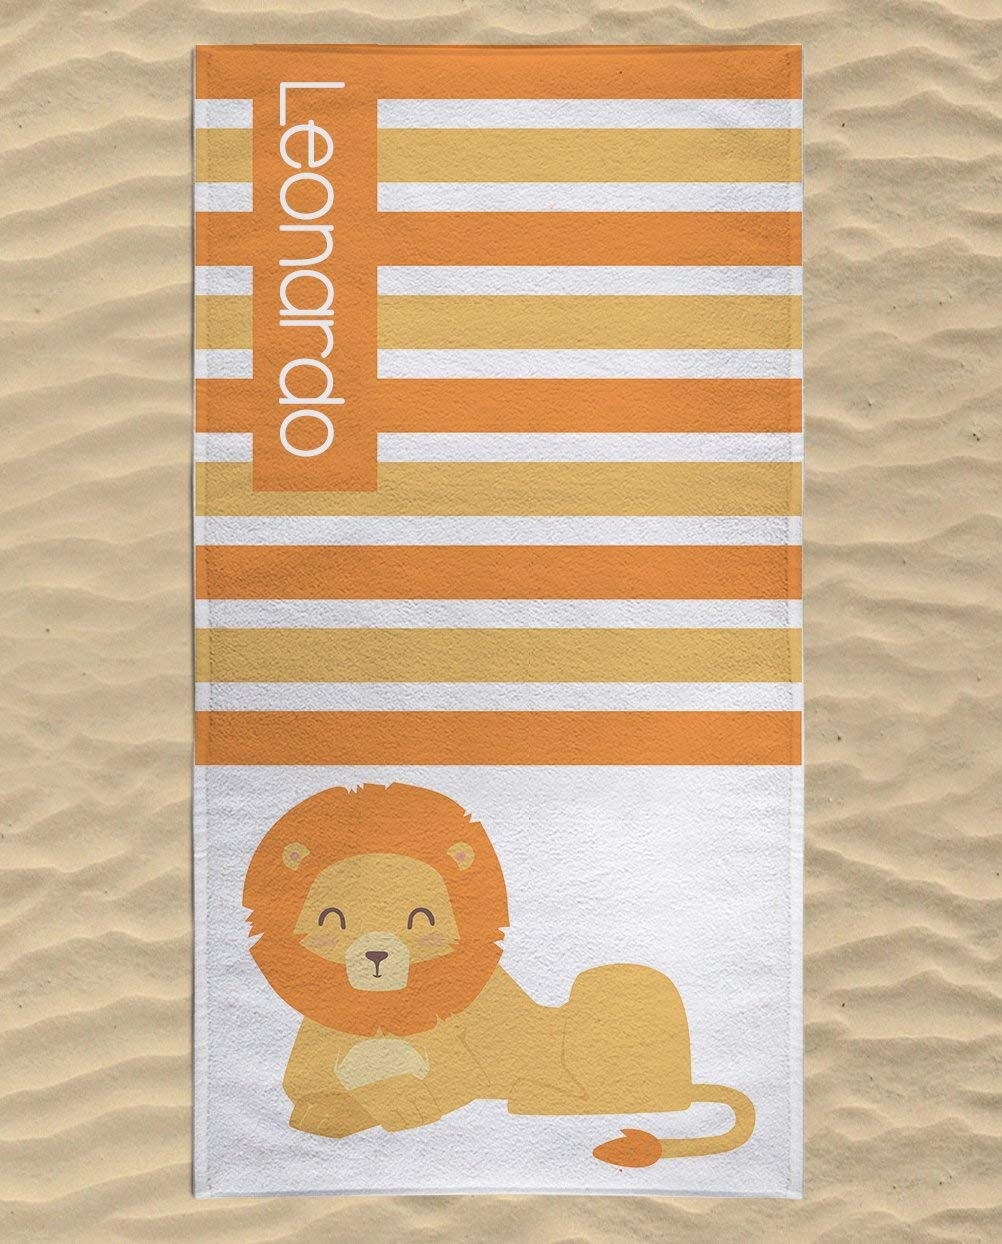 Personalized Lion Microfiber Beach Towel for Kids - Yellow and Orange Lion Striped Beach Towel, Kids Swimming Towel, Custom Beach Towel, Lion Gifts for Girls, Beach Flat Towel 60x30 inches